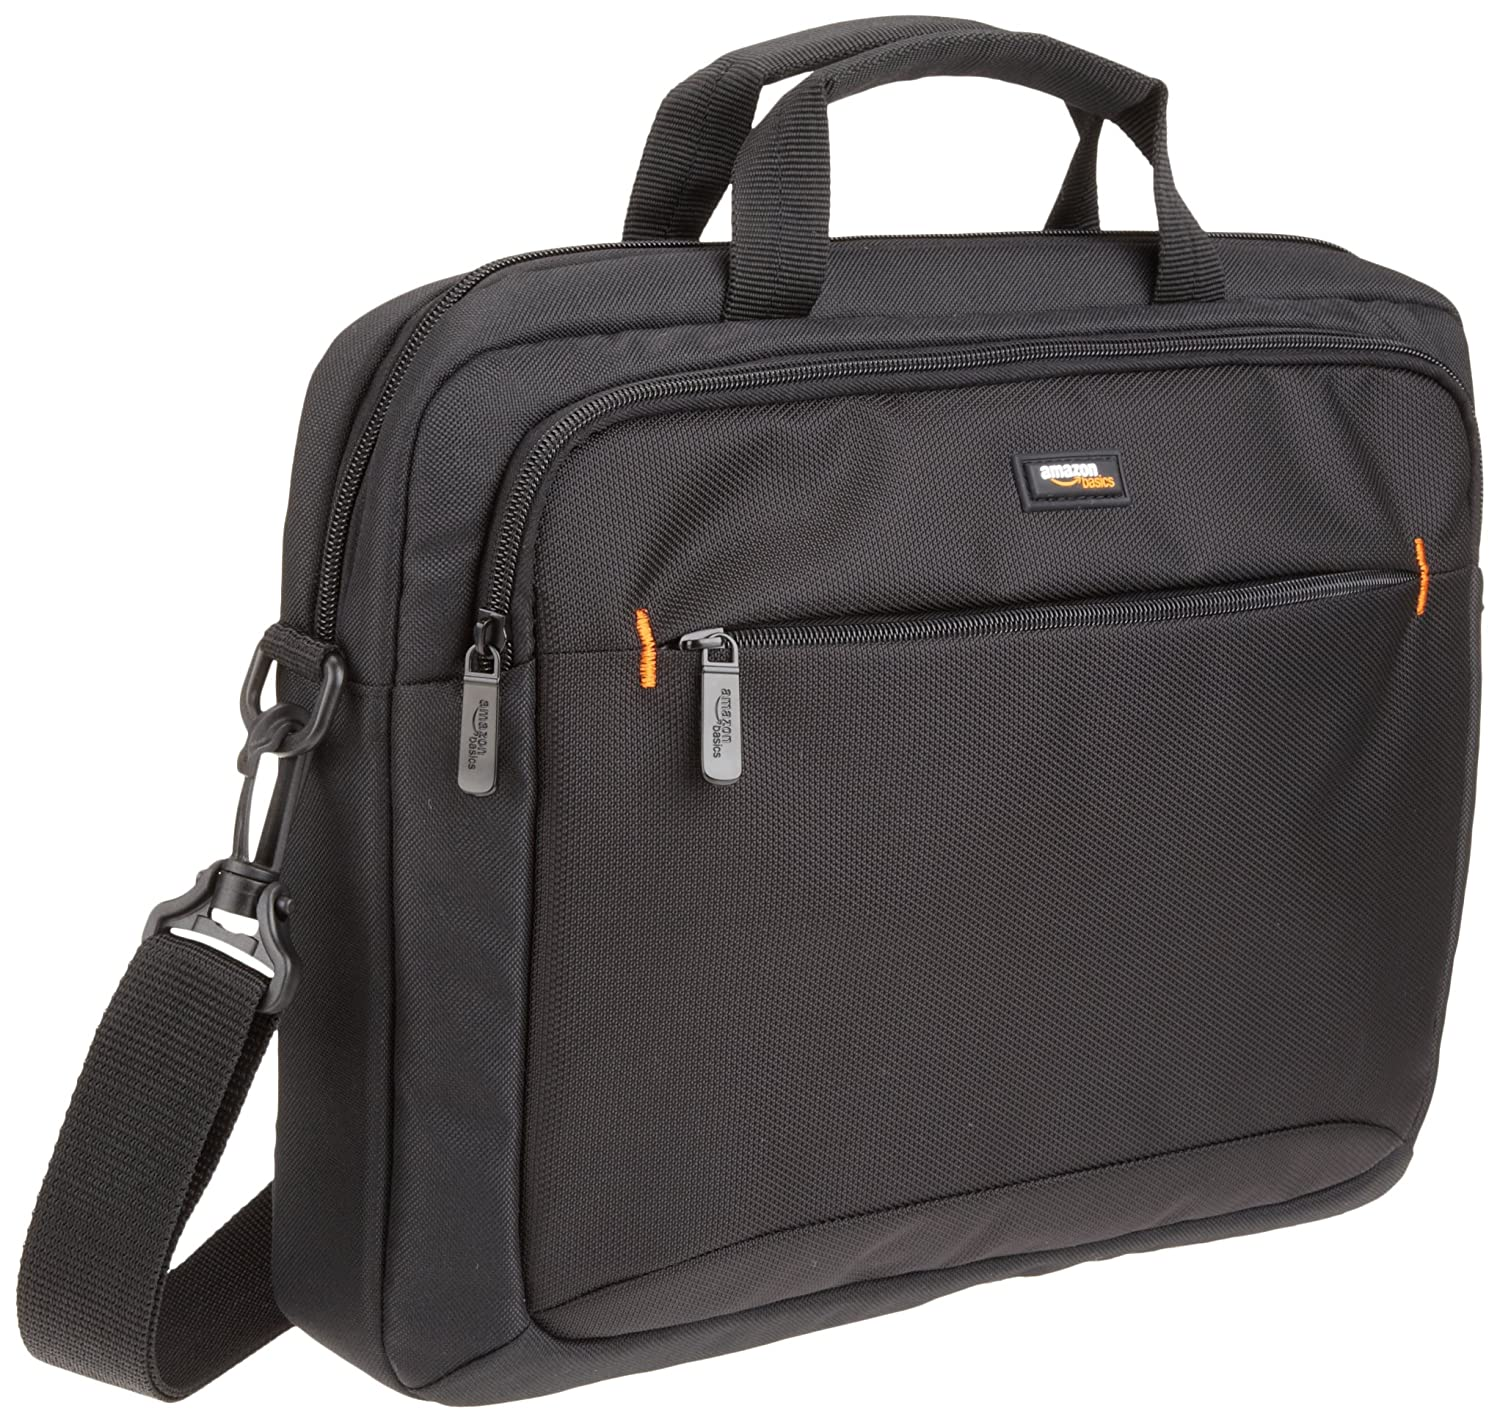 AmazonBasics 14.1-Inch Laptop and Tablet Bag